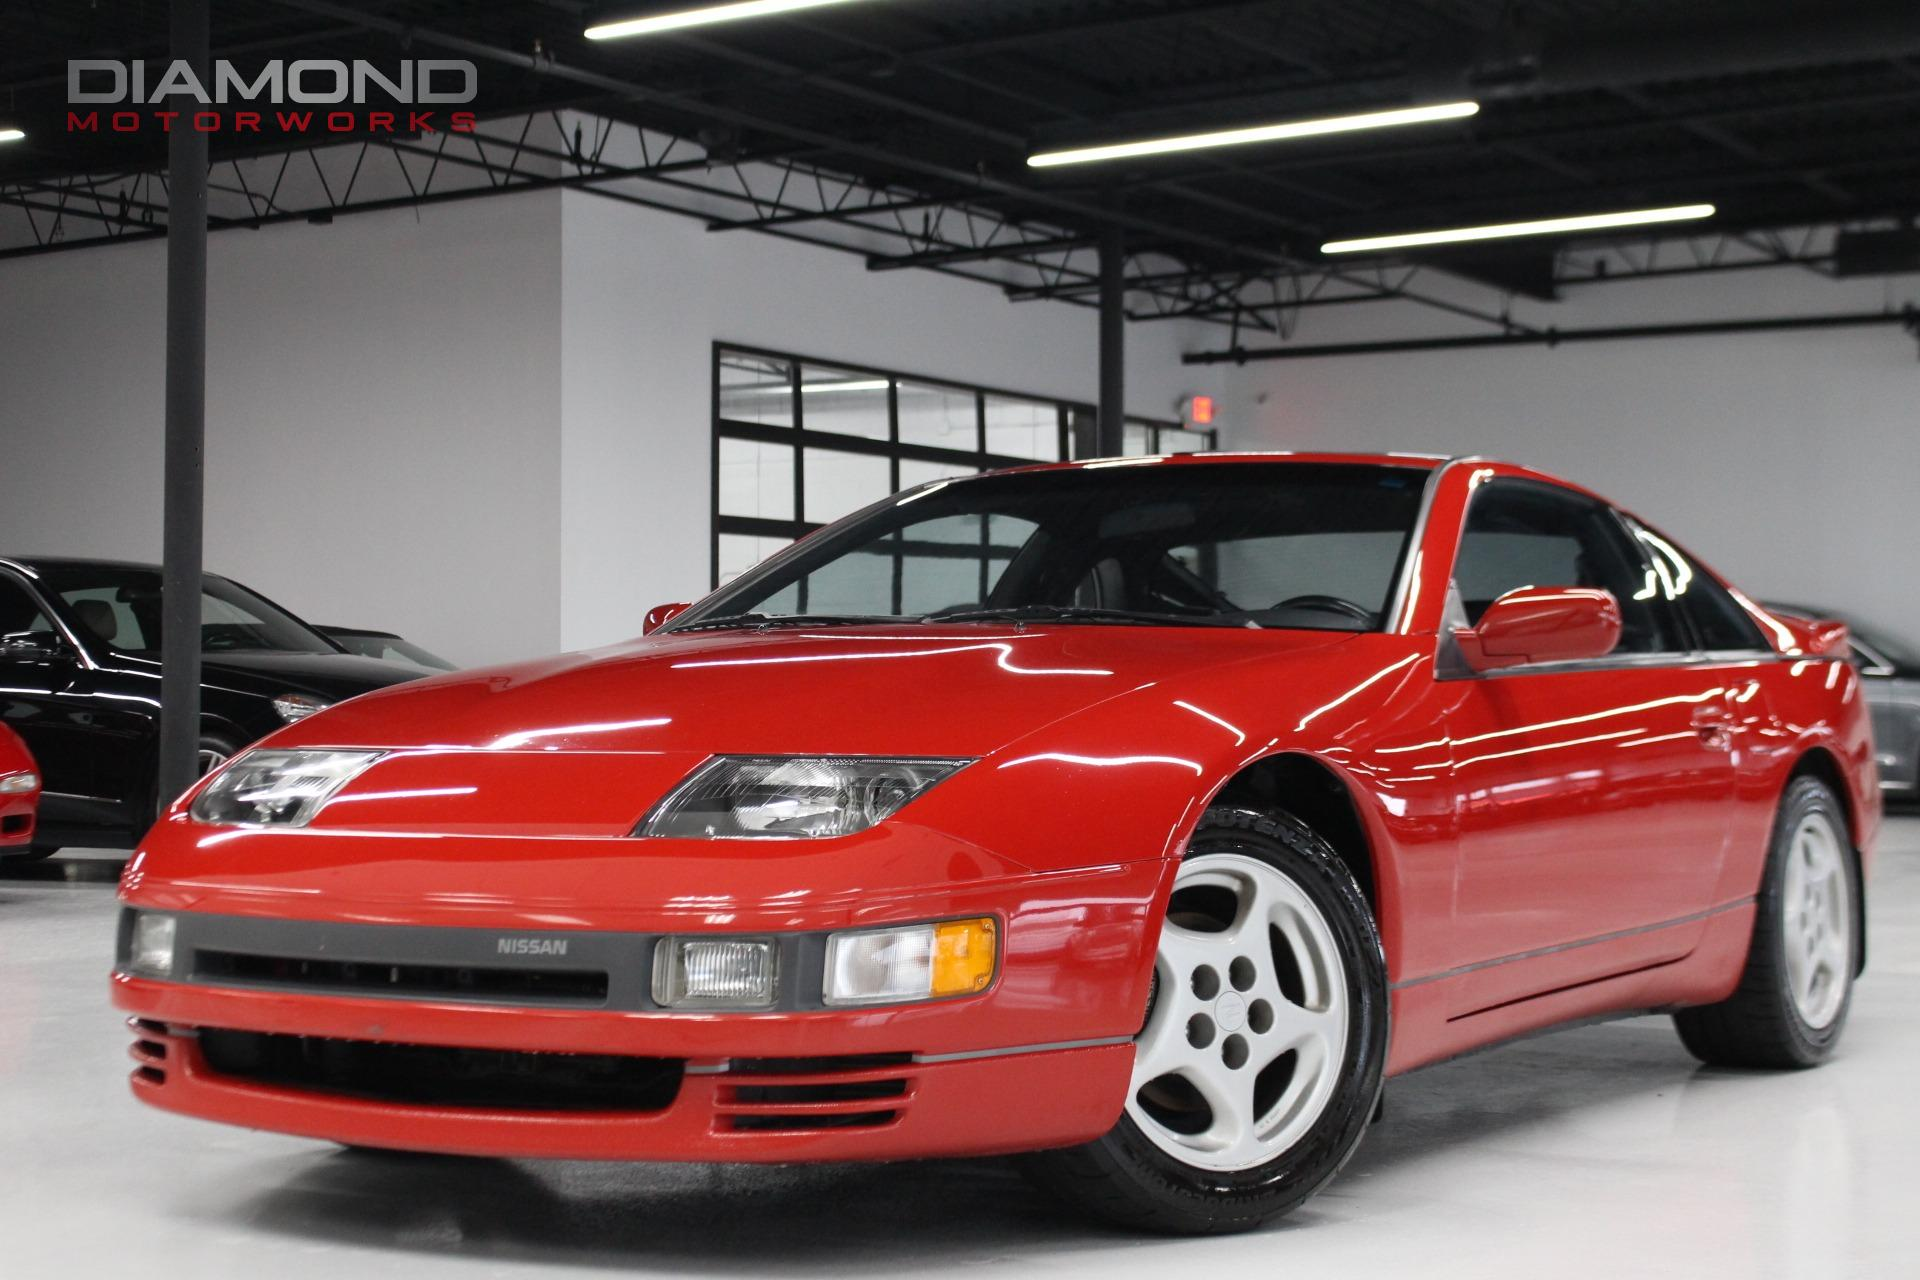 1990 nissan 300zx twin turbo stock 686 for sale near lisle il il nissan dealer. Black Bedroom Furniture Sets. Home Design Ideas